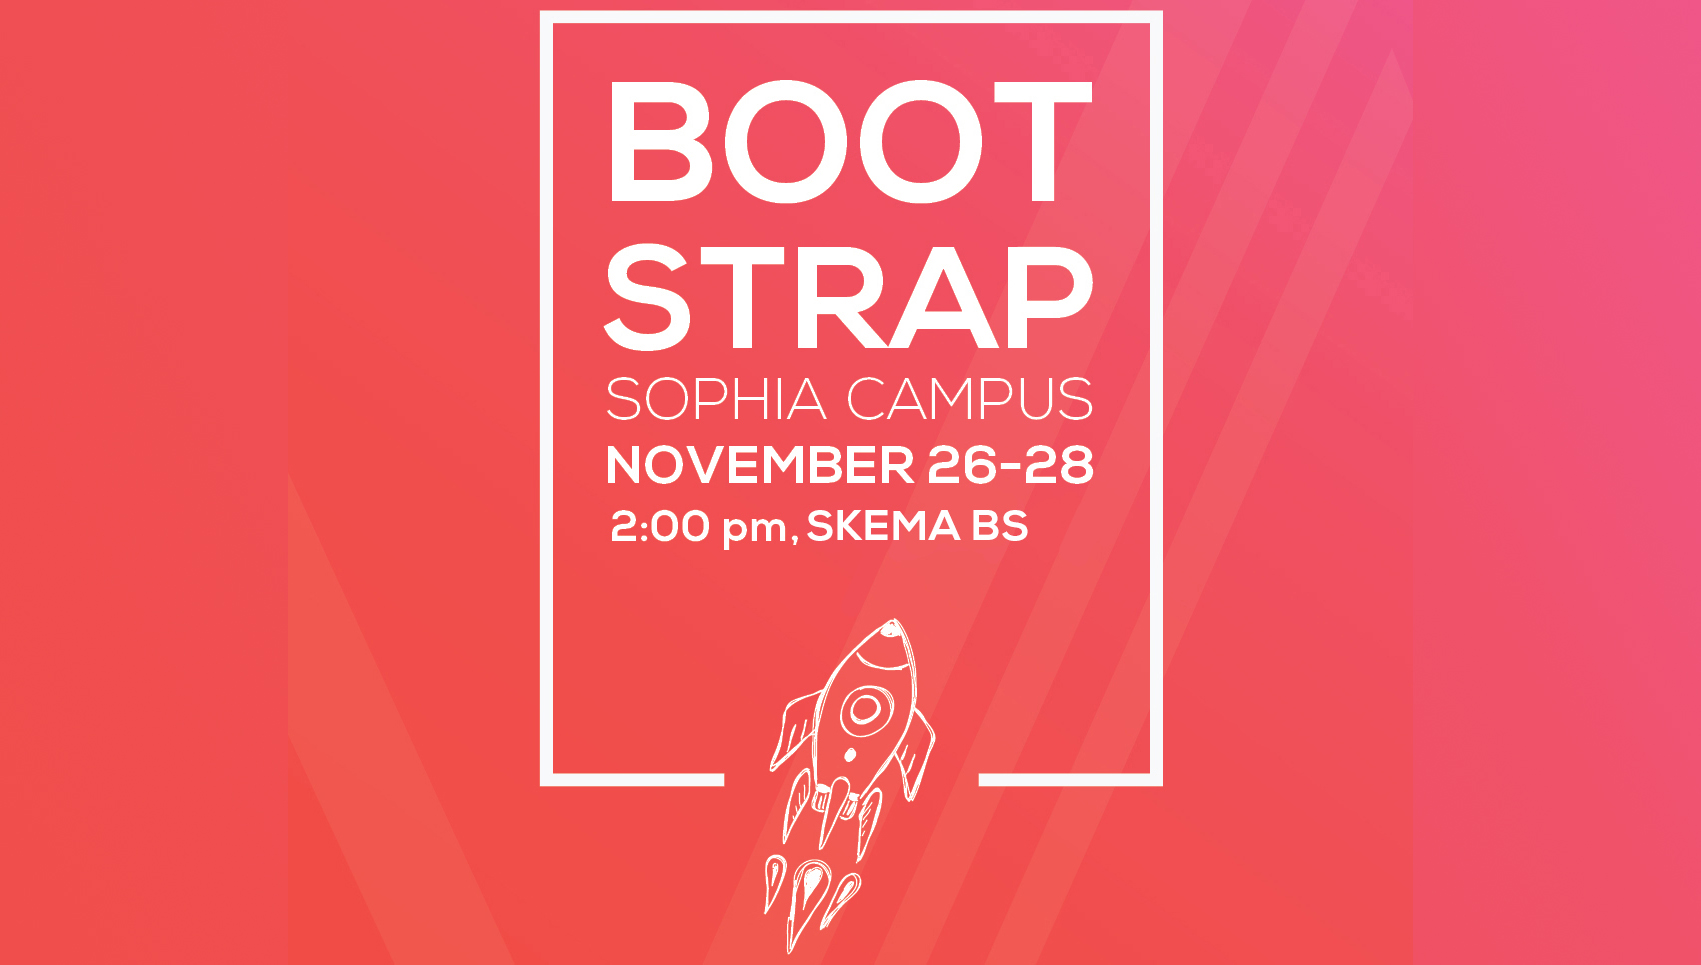 Bootstrap-Fall 2018: An opportunity to substantiate your business plan